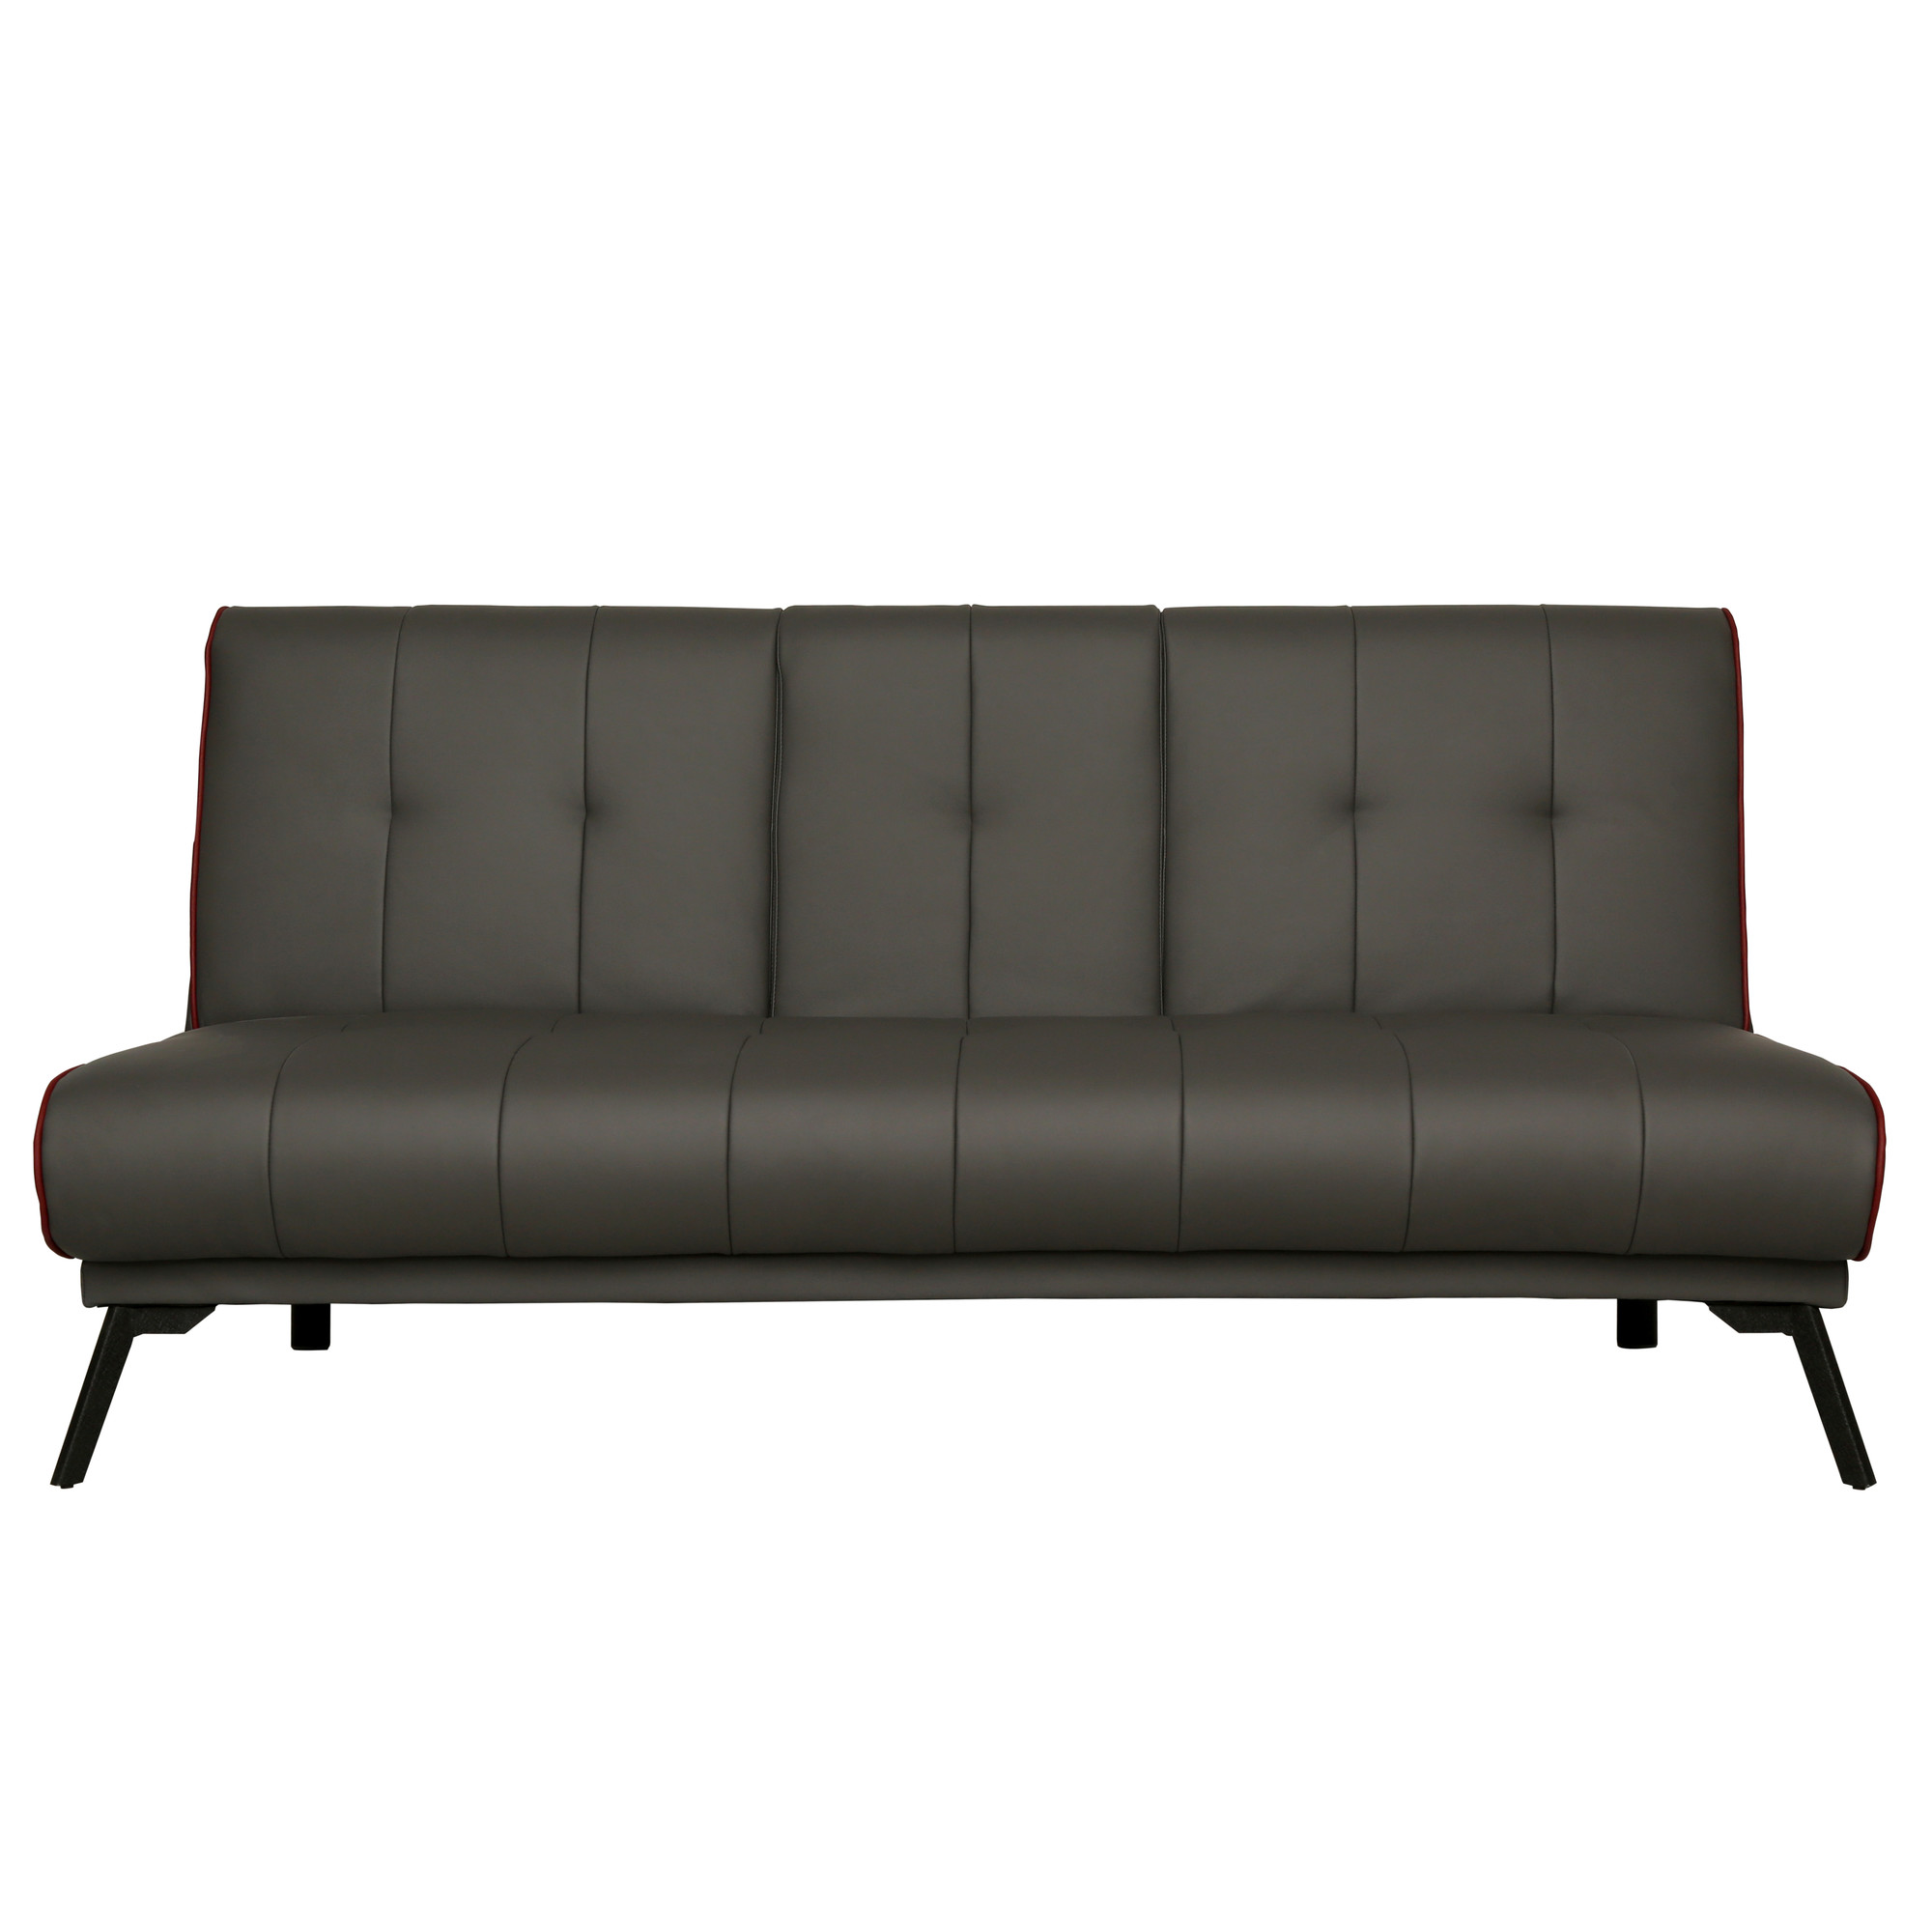 Sofa Beds Futon & Leather Beds